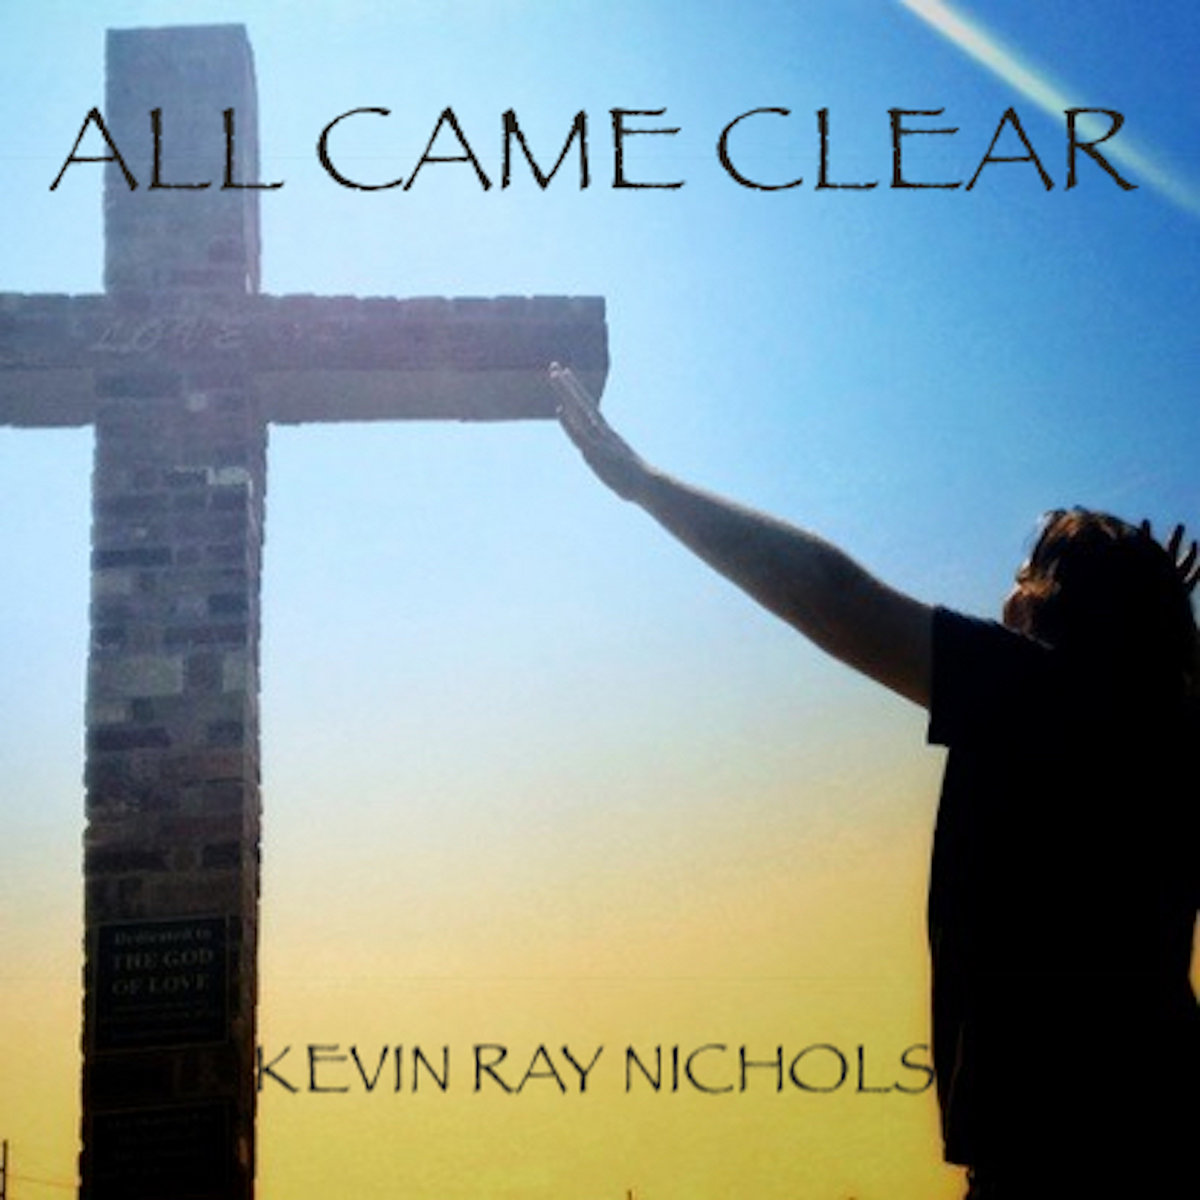 All Came Clear (single) by Kevin Ray Nichols